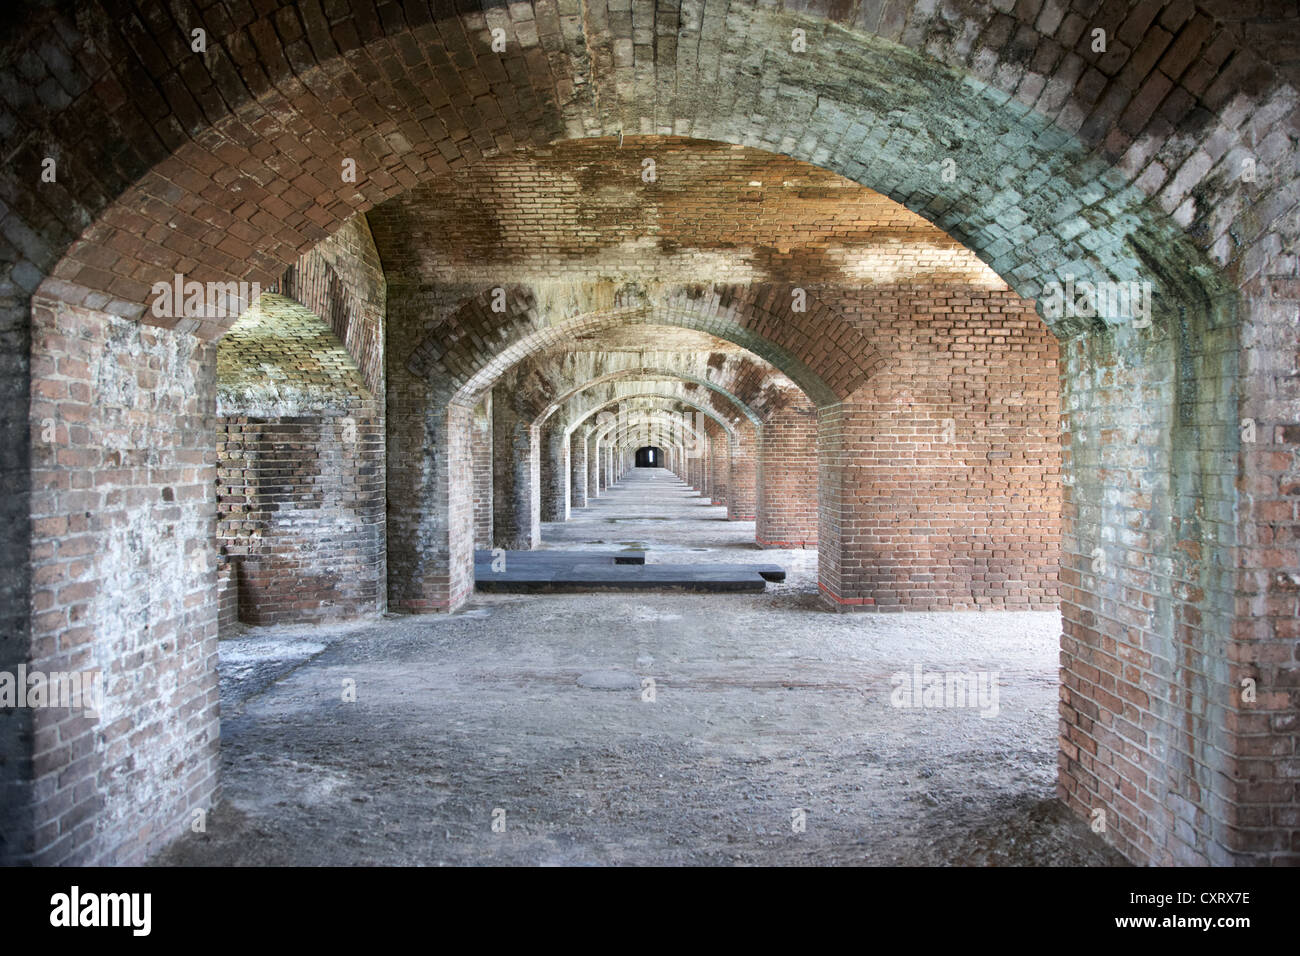 upper floor brick archway corridors in fort jefferson dry tortugas national park florida keys usa - Stock Image